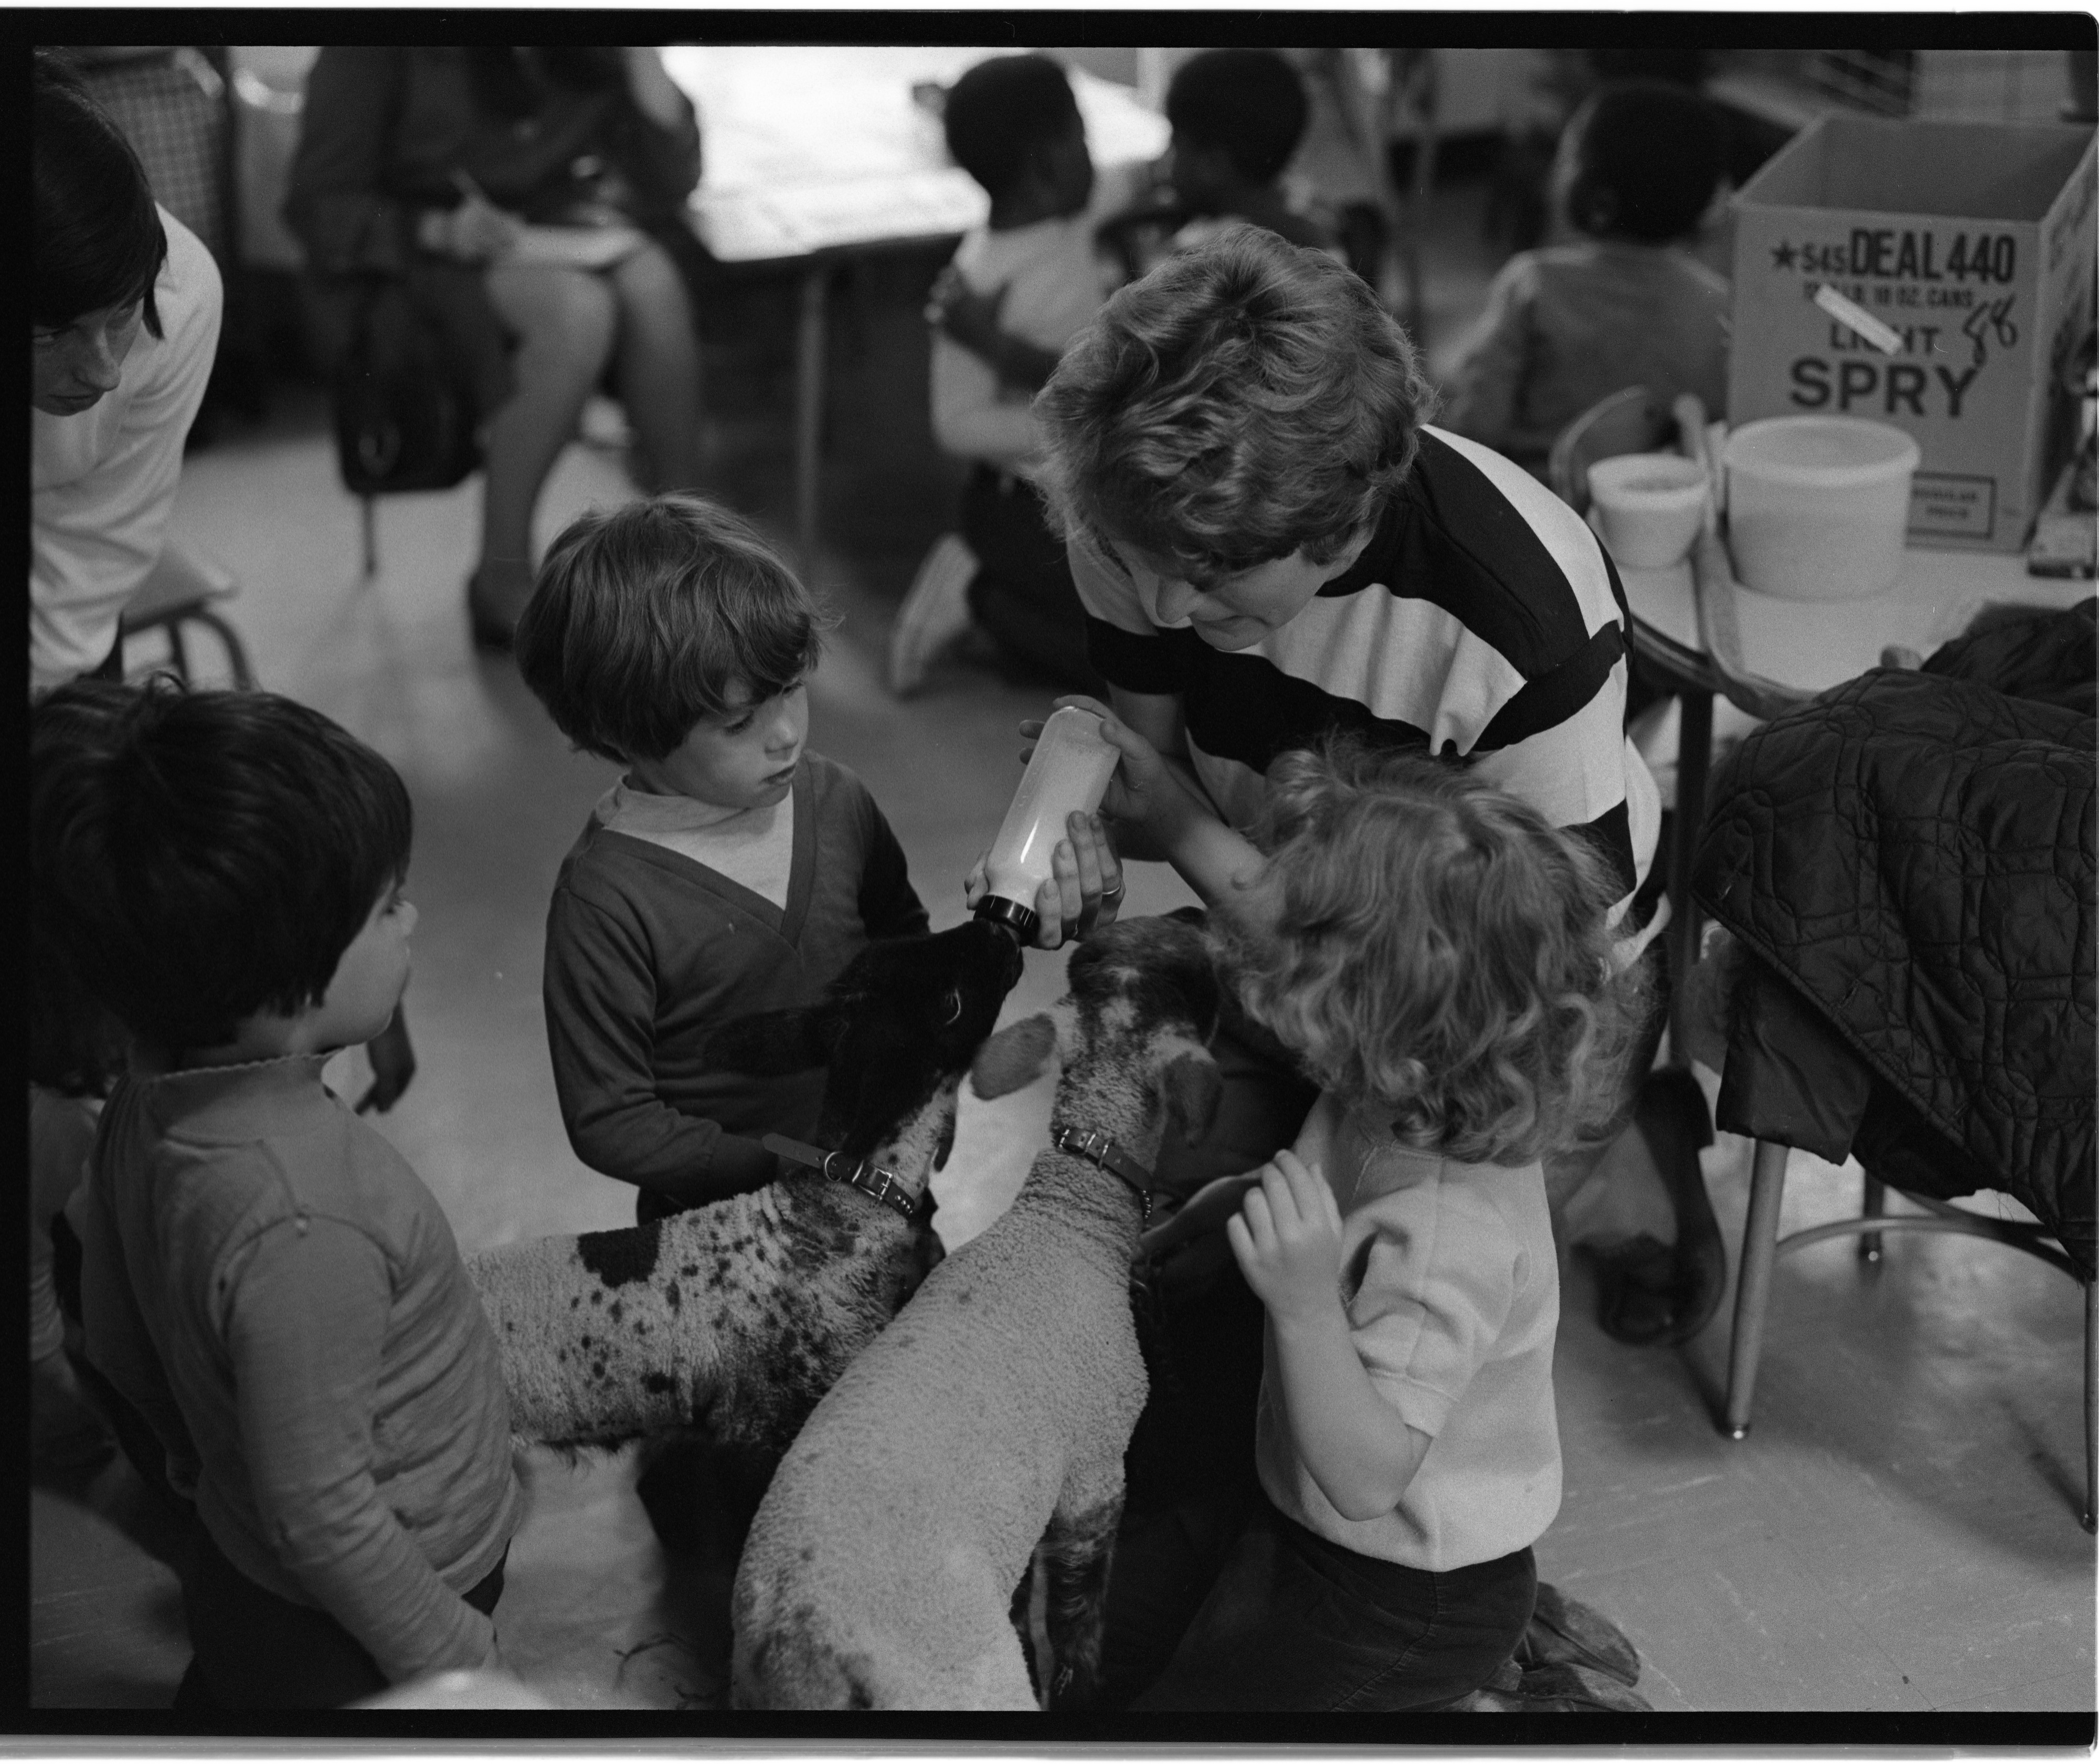 Children Feeding Lambs At Perry Nursery School, May 28, 1971 image